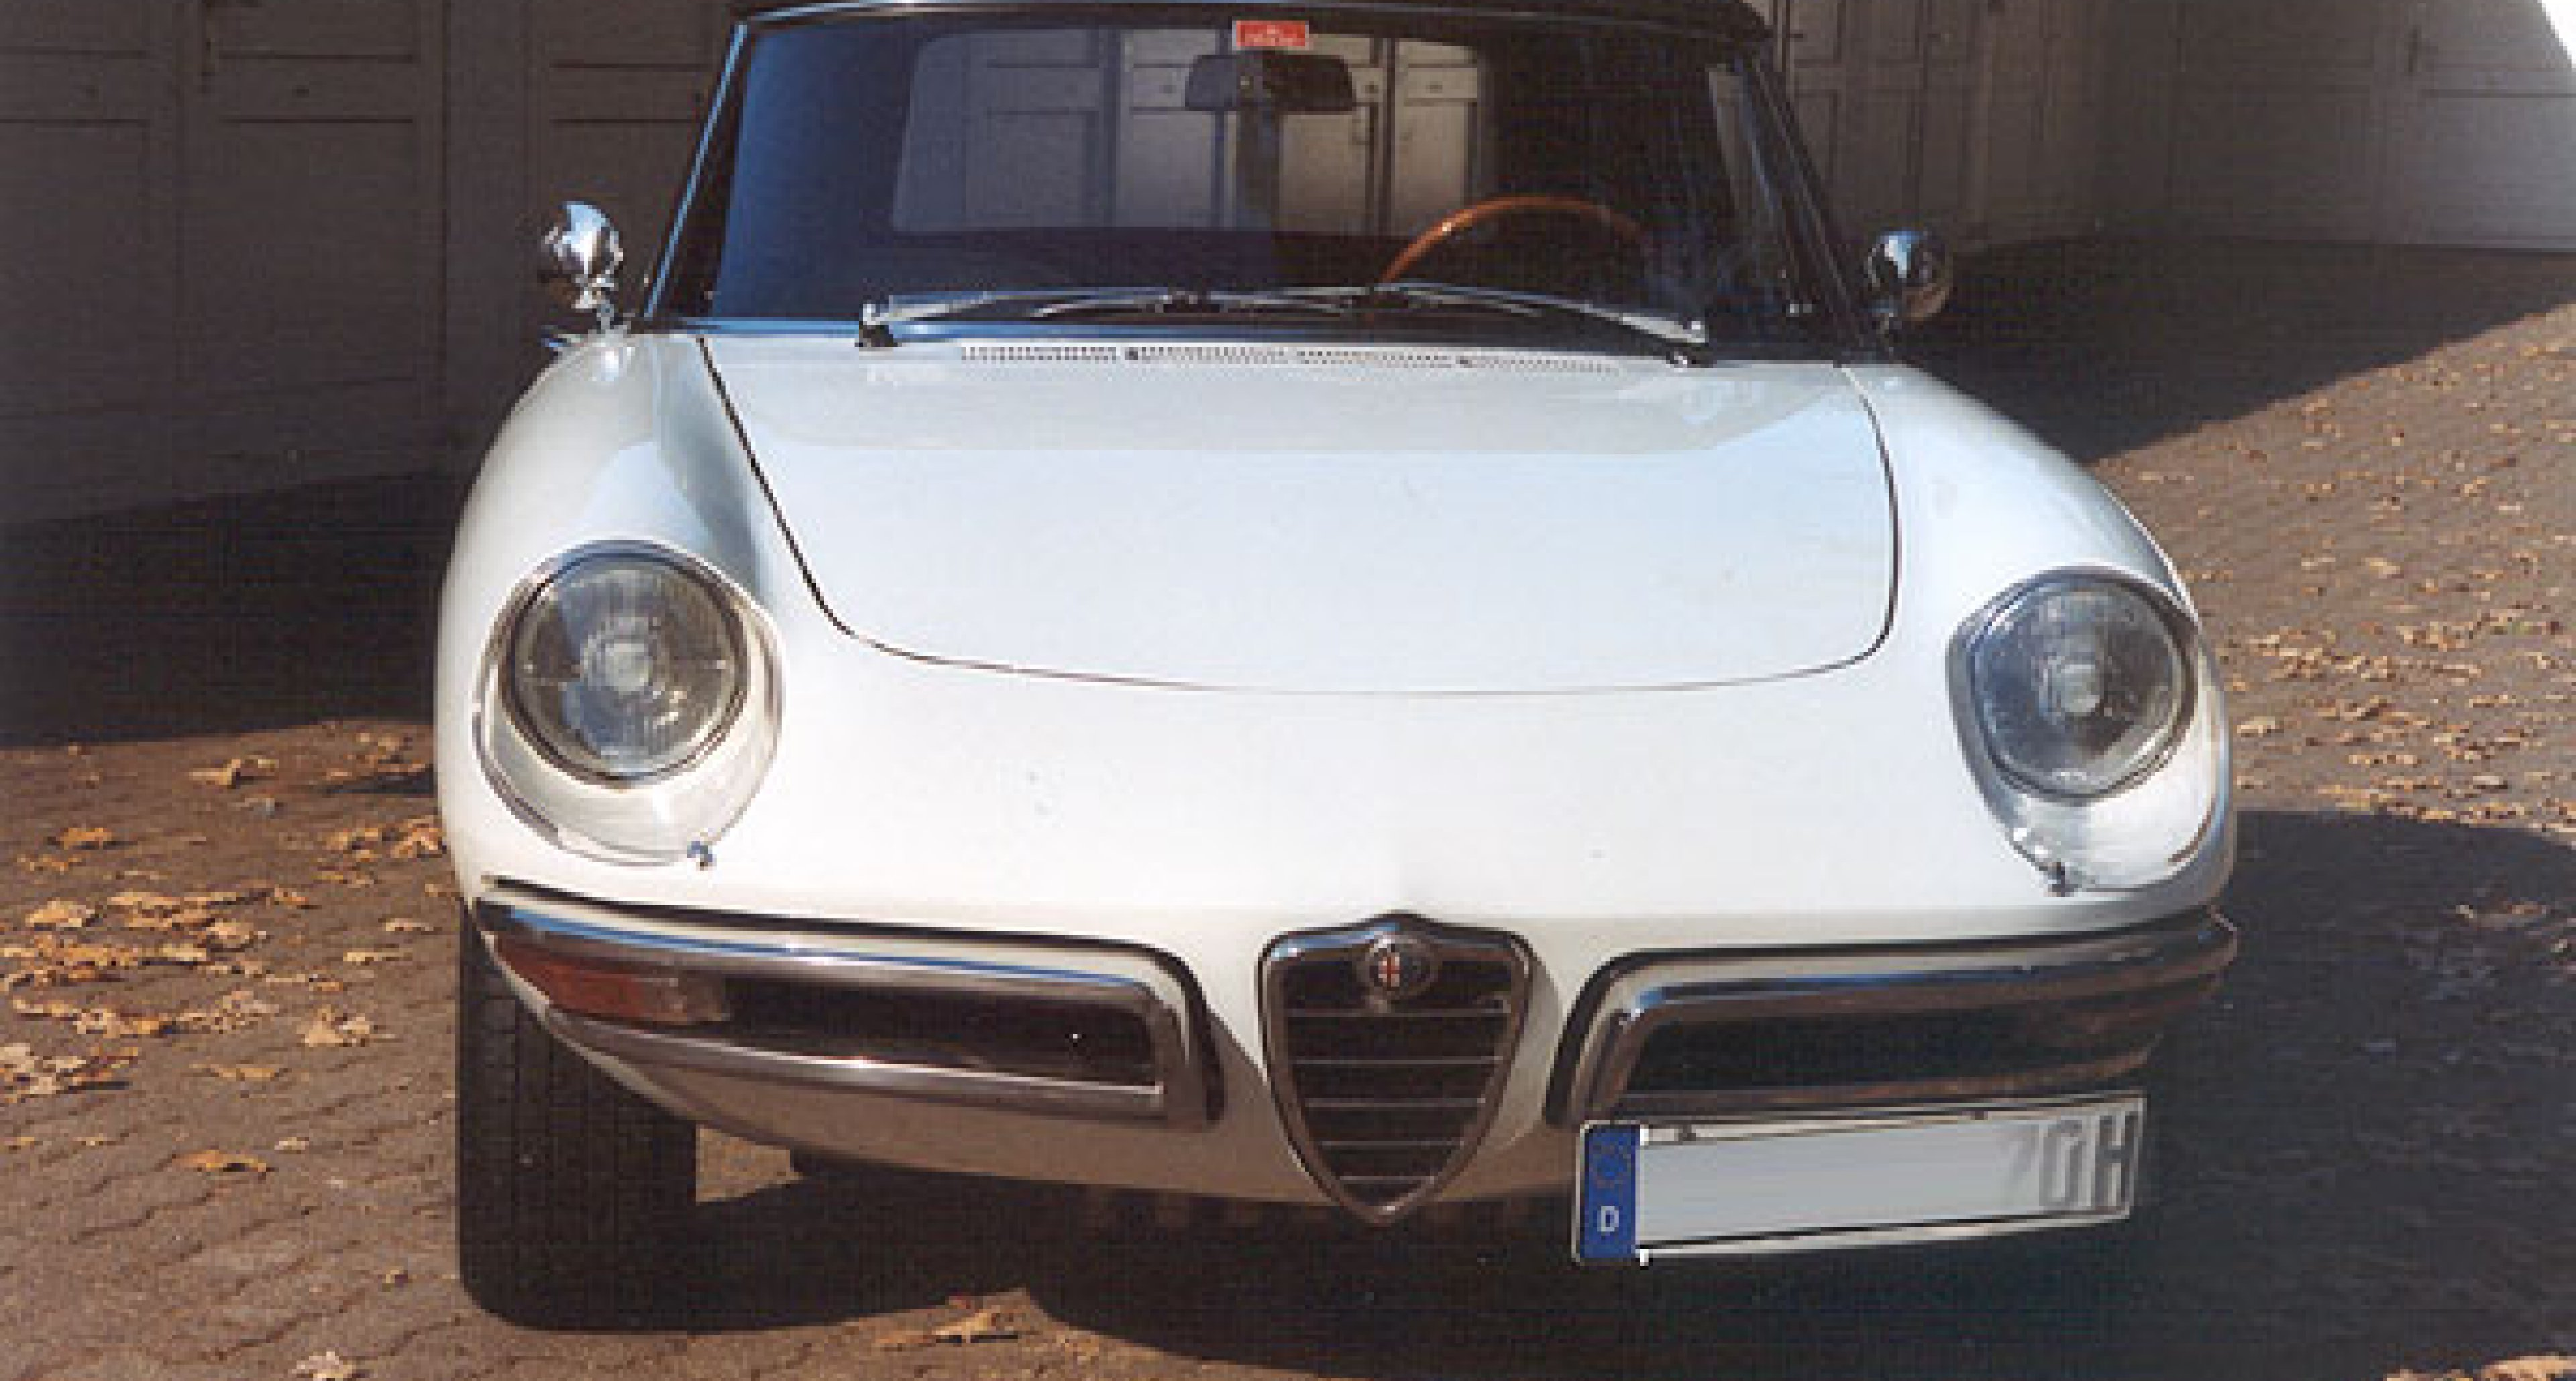 Readers' Cars - Italian collection in Northern Germany